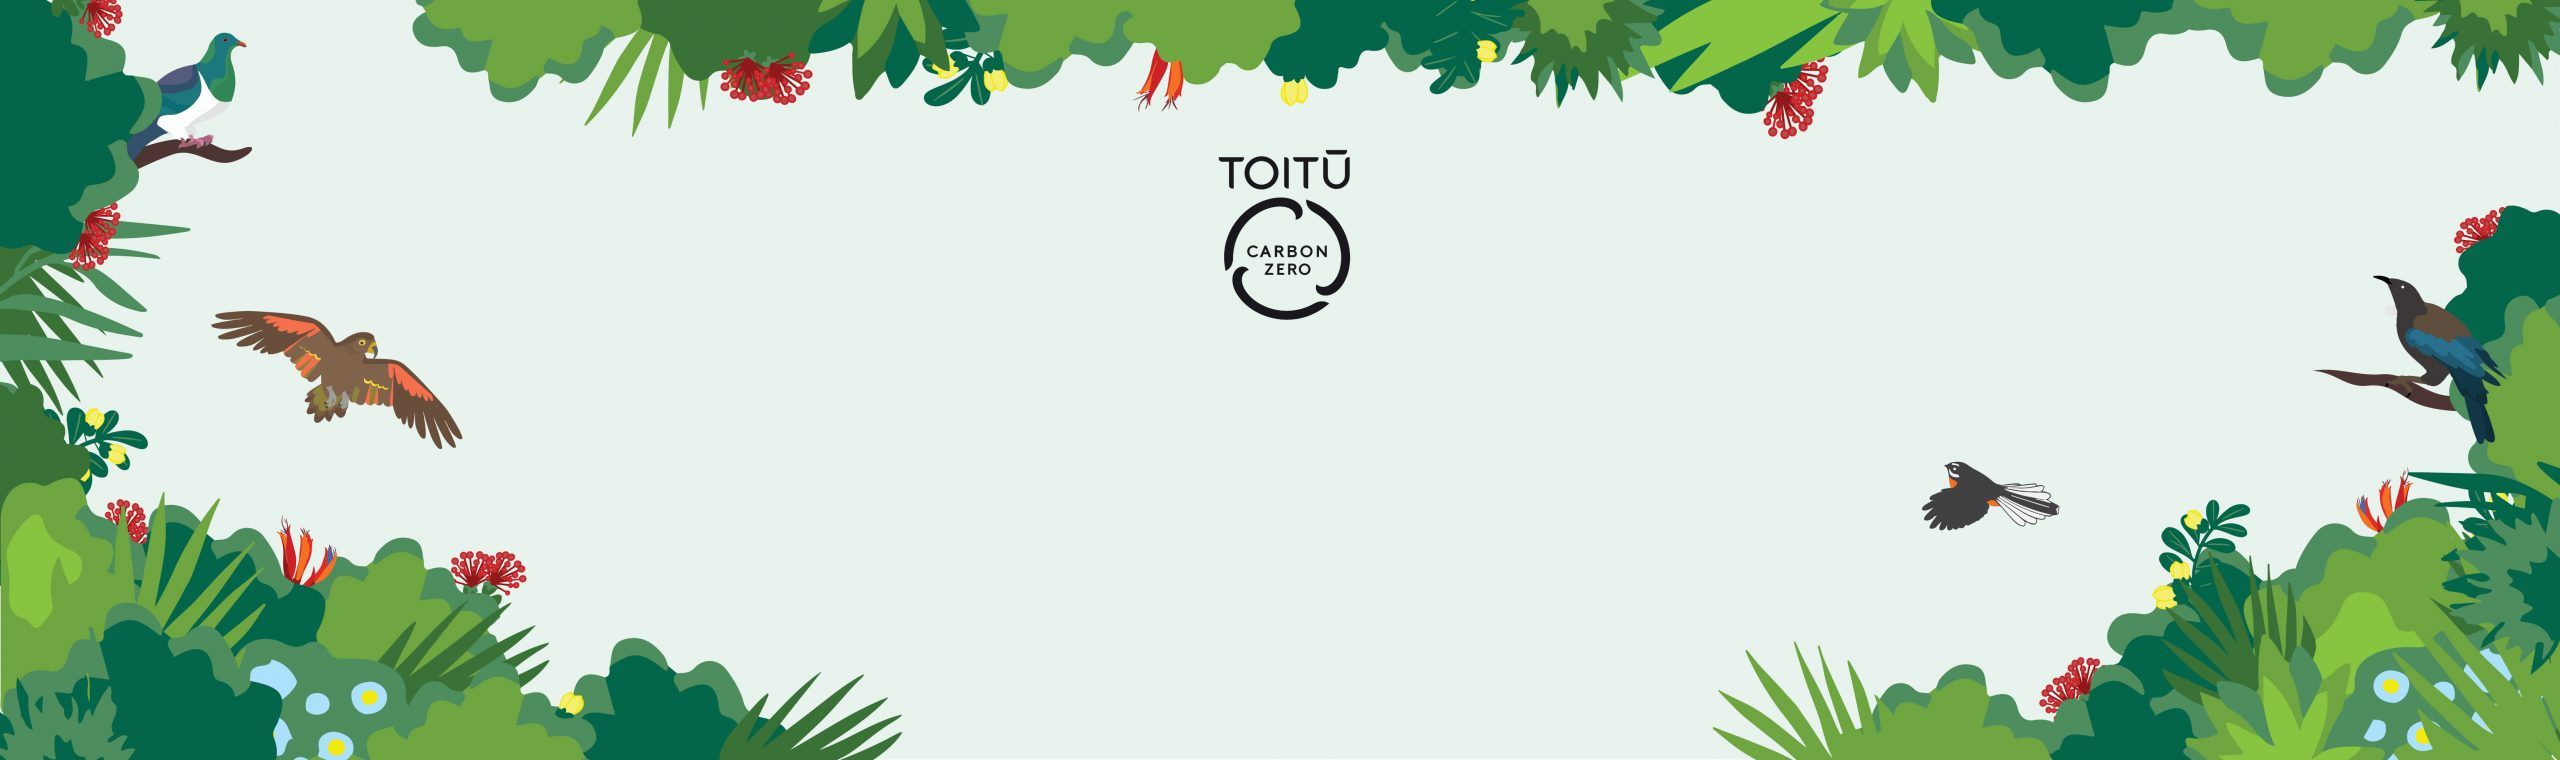 We're now Toitū carbonzero certified